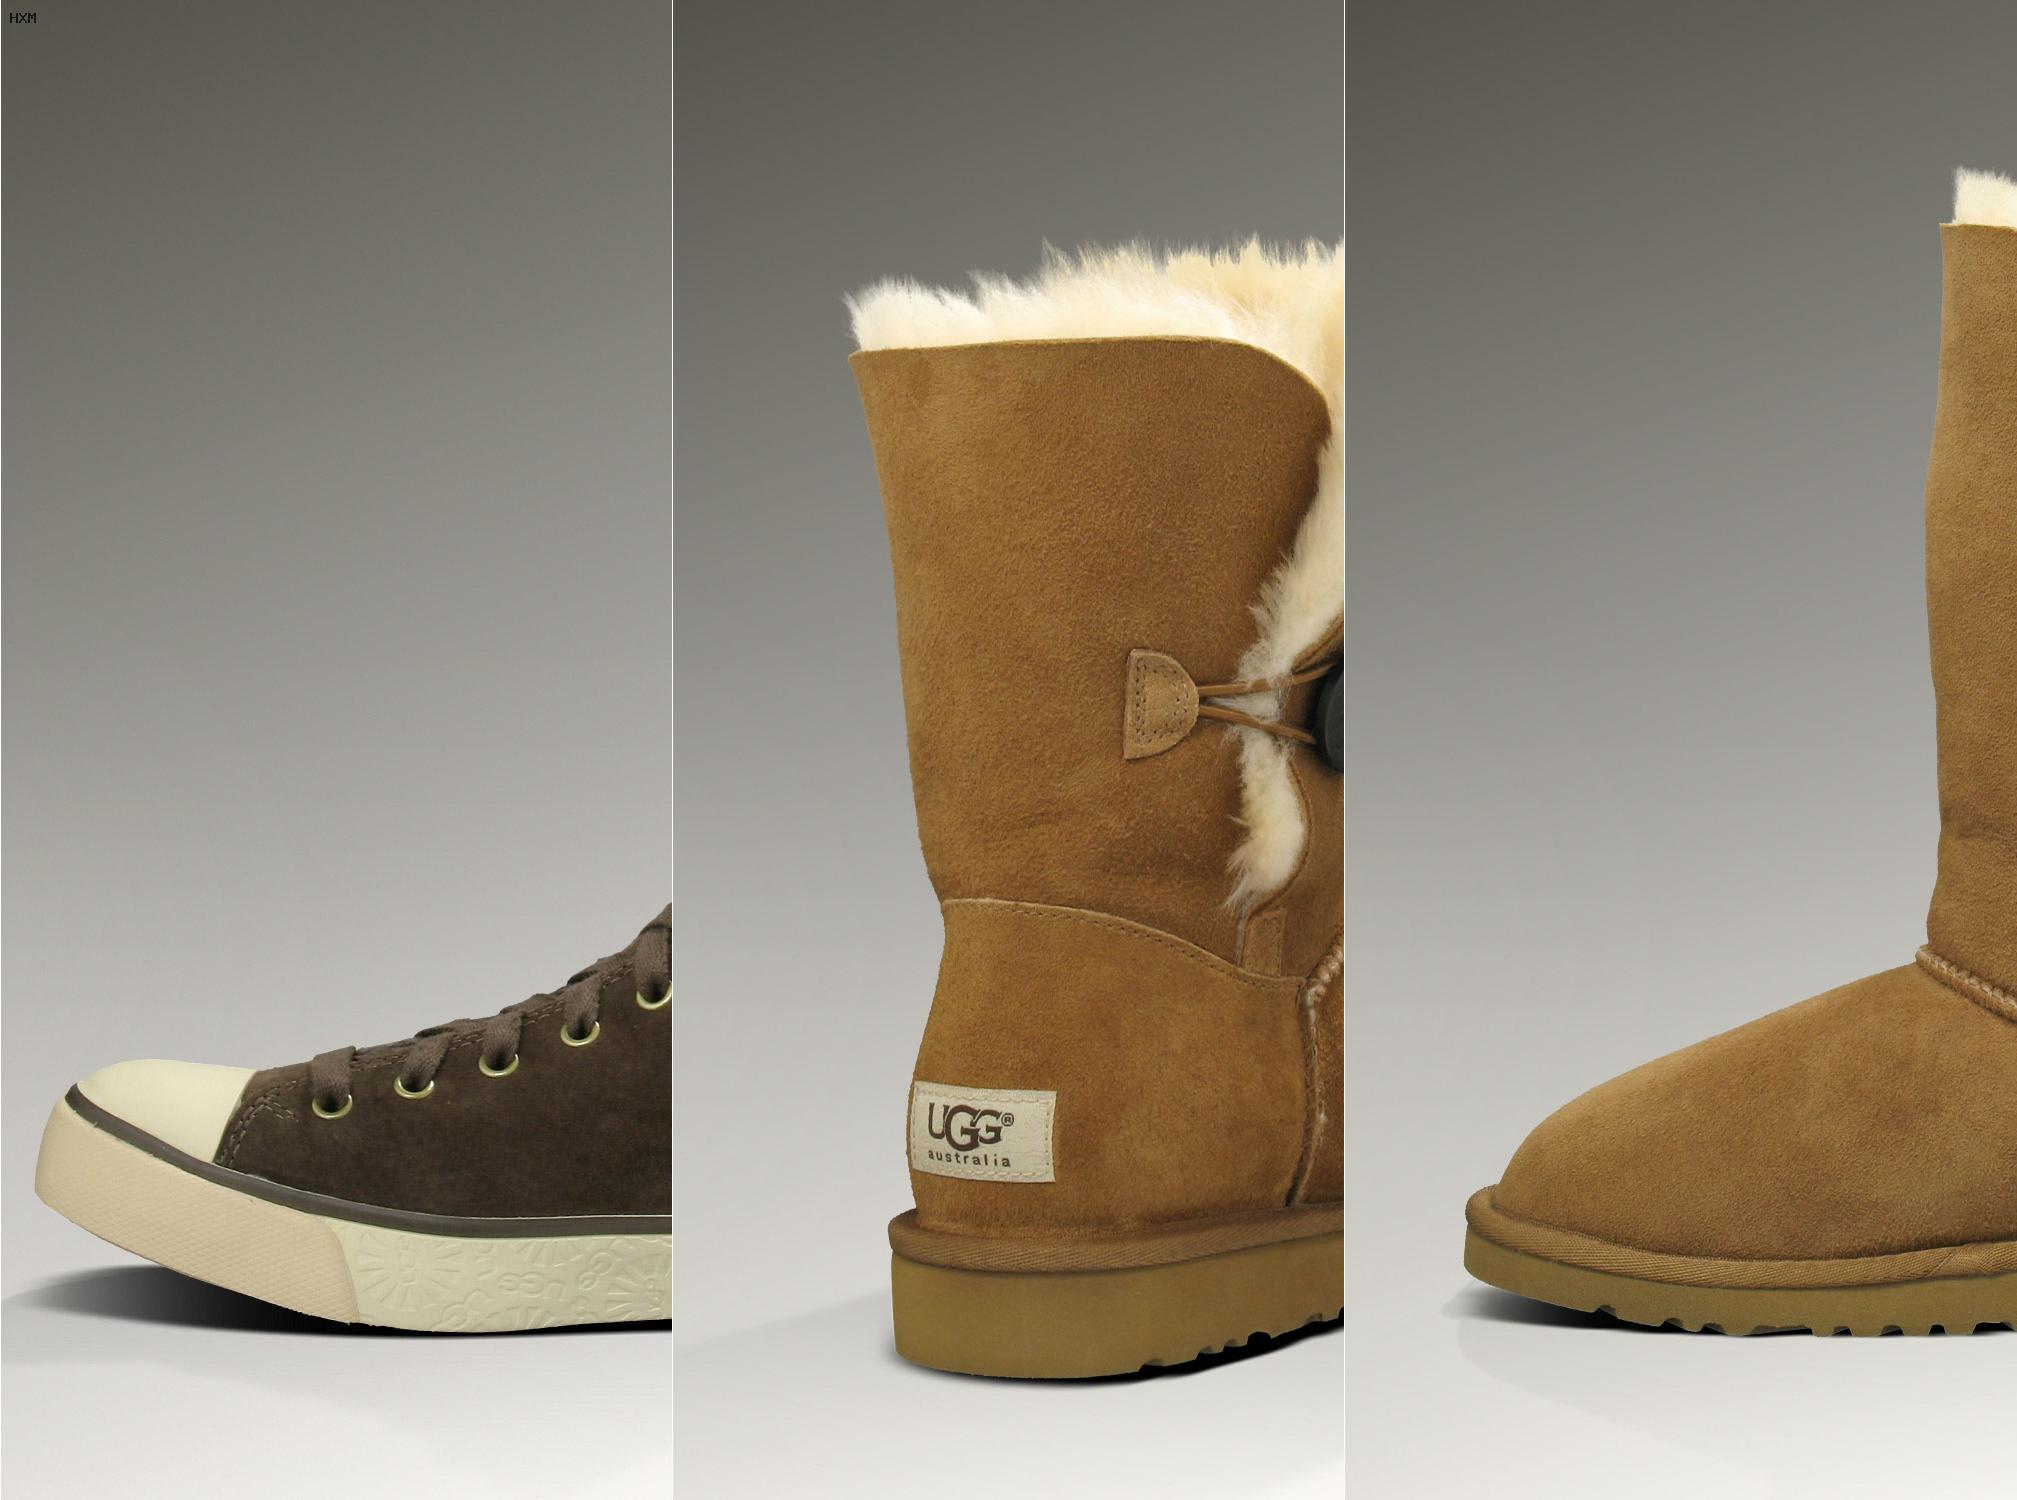 ugg boots in florence italy